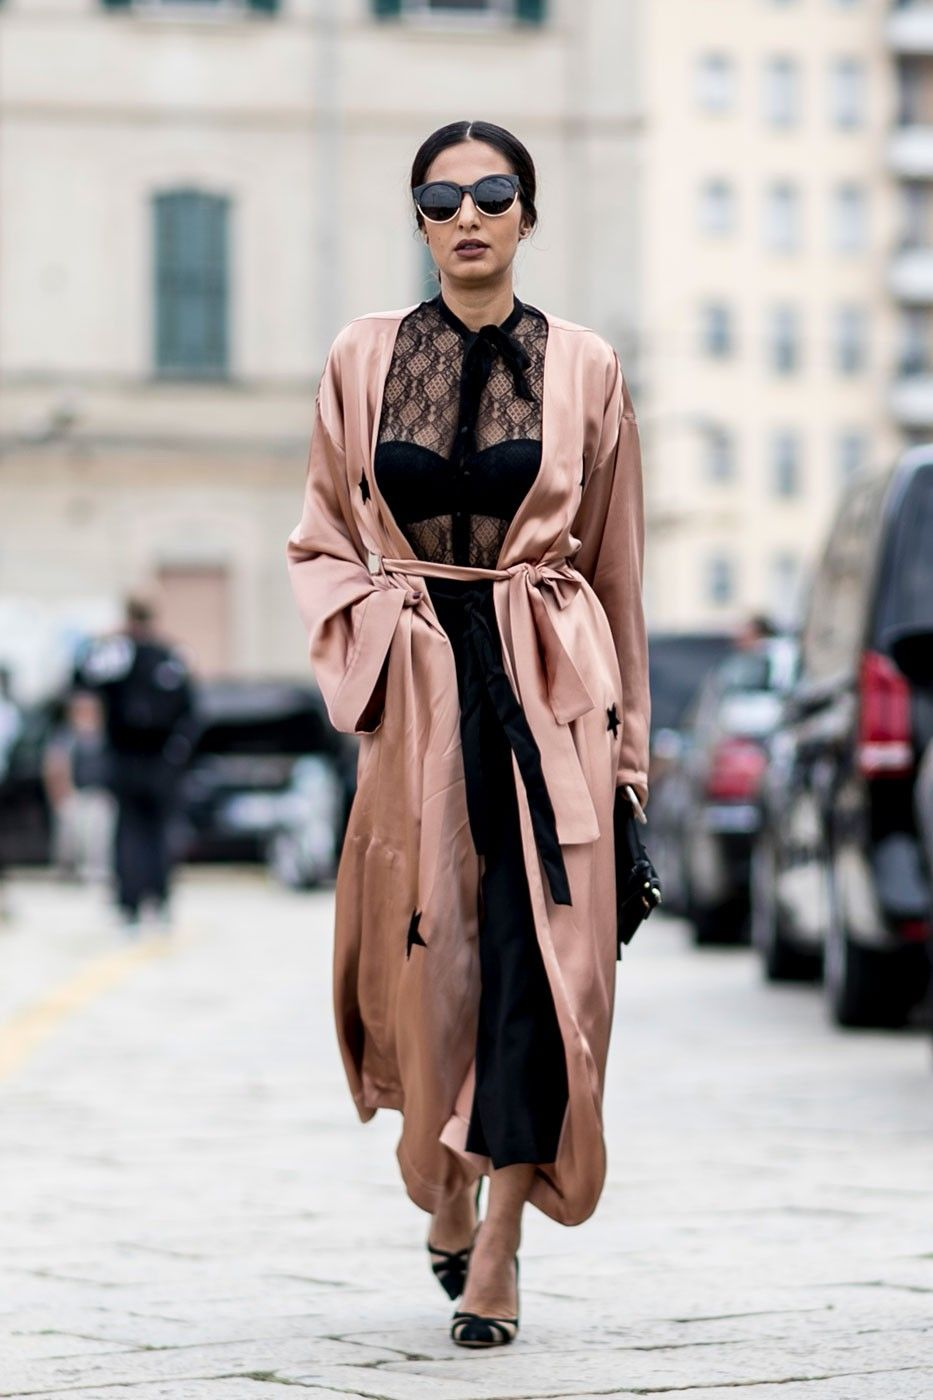 The Most Captivating Street Style Photos From Milan Fashion Week